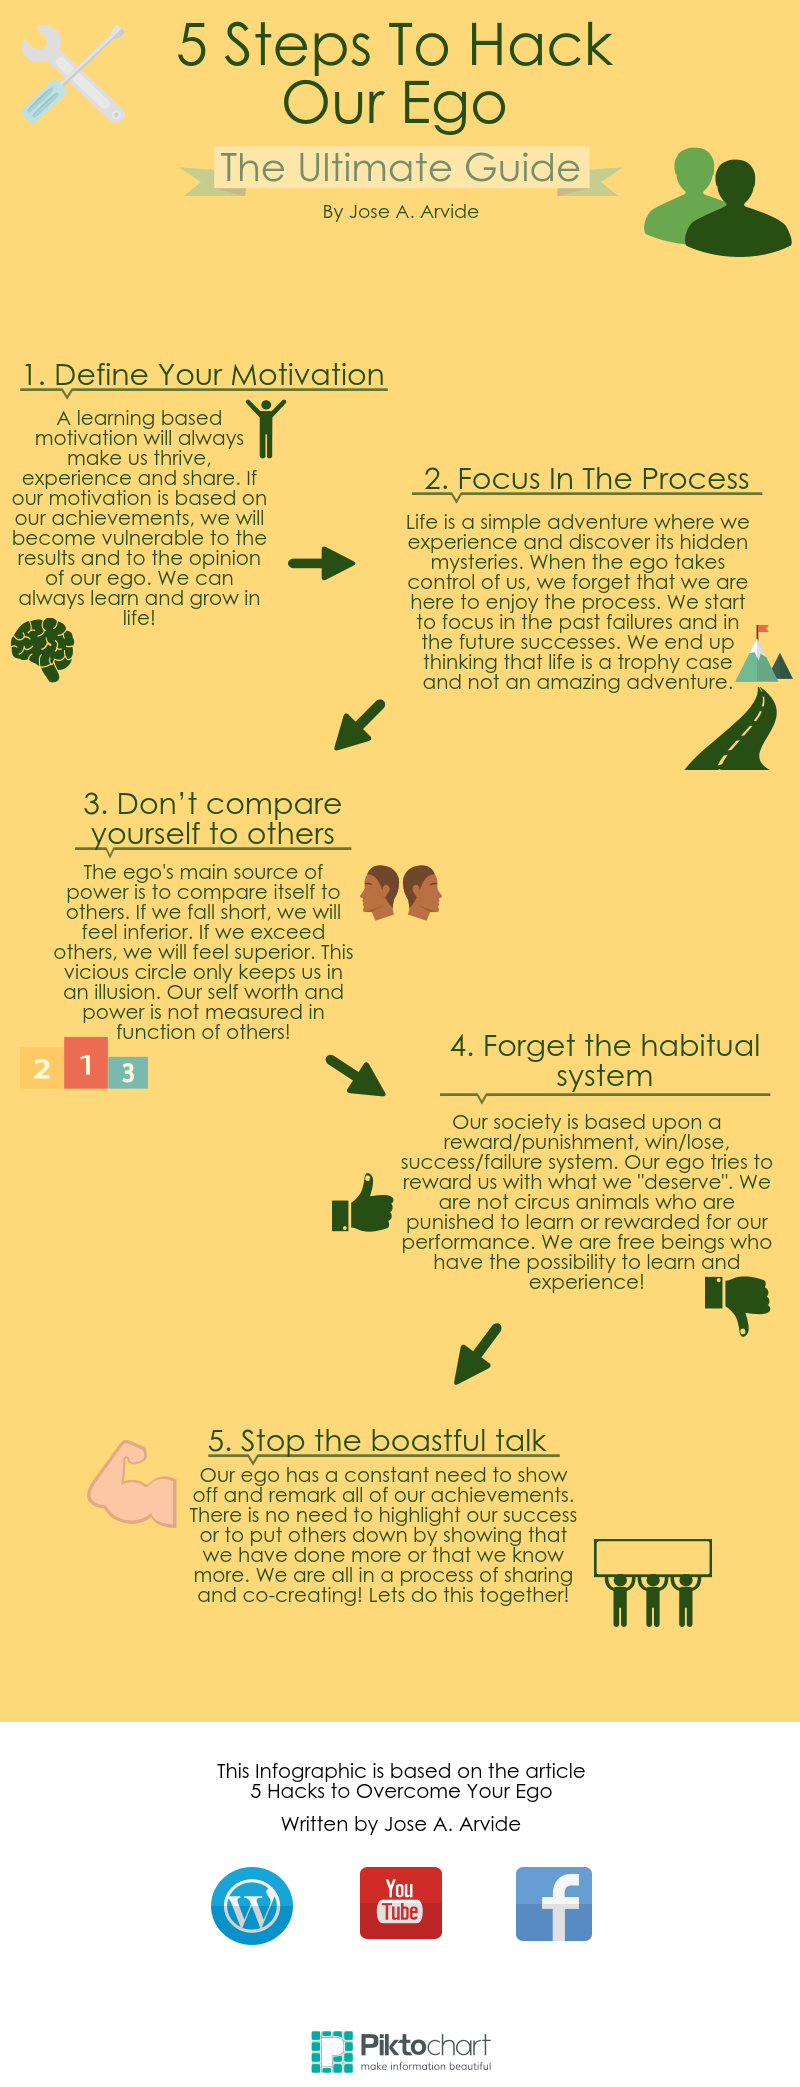 5 Steps To Hack Our Ego